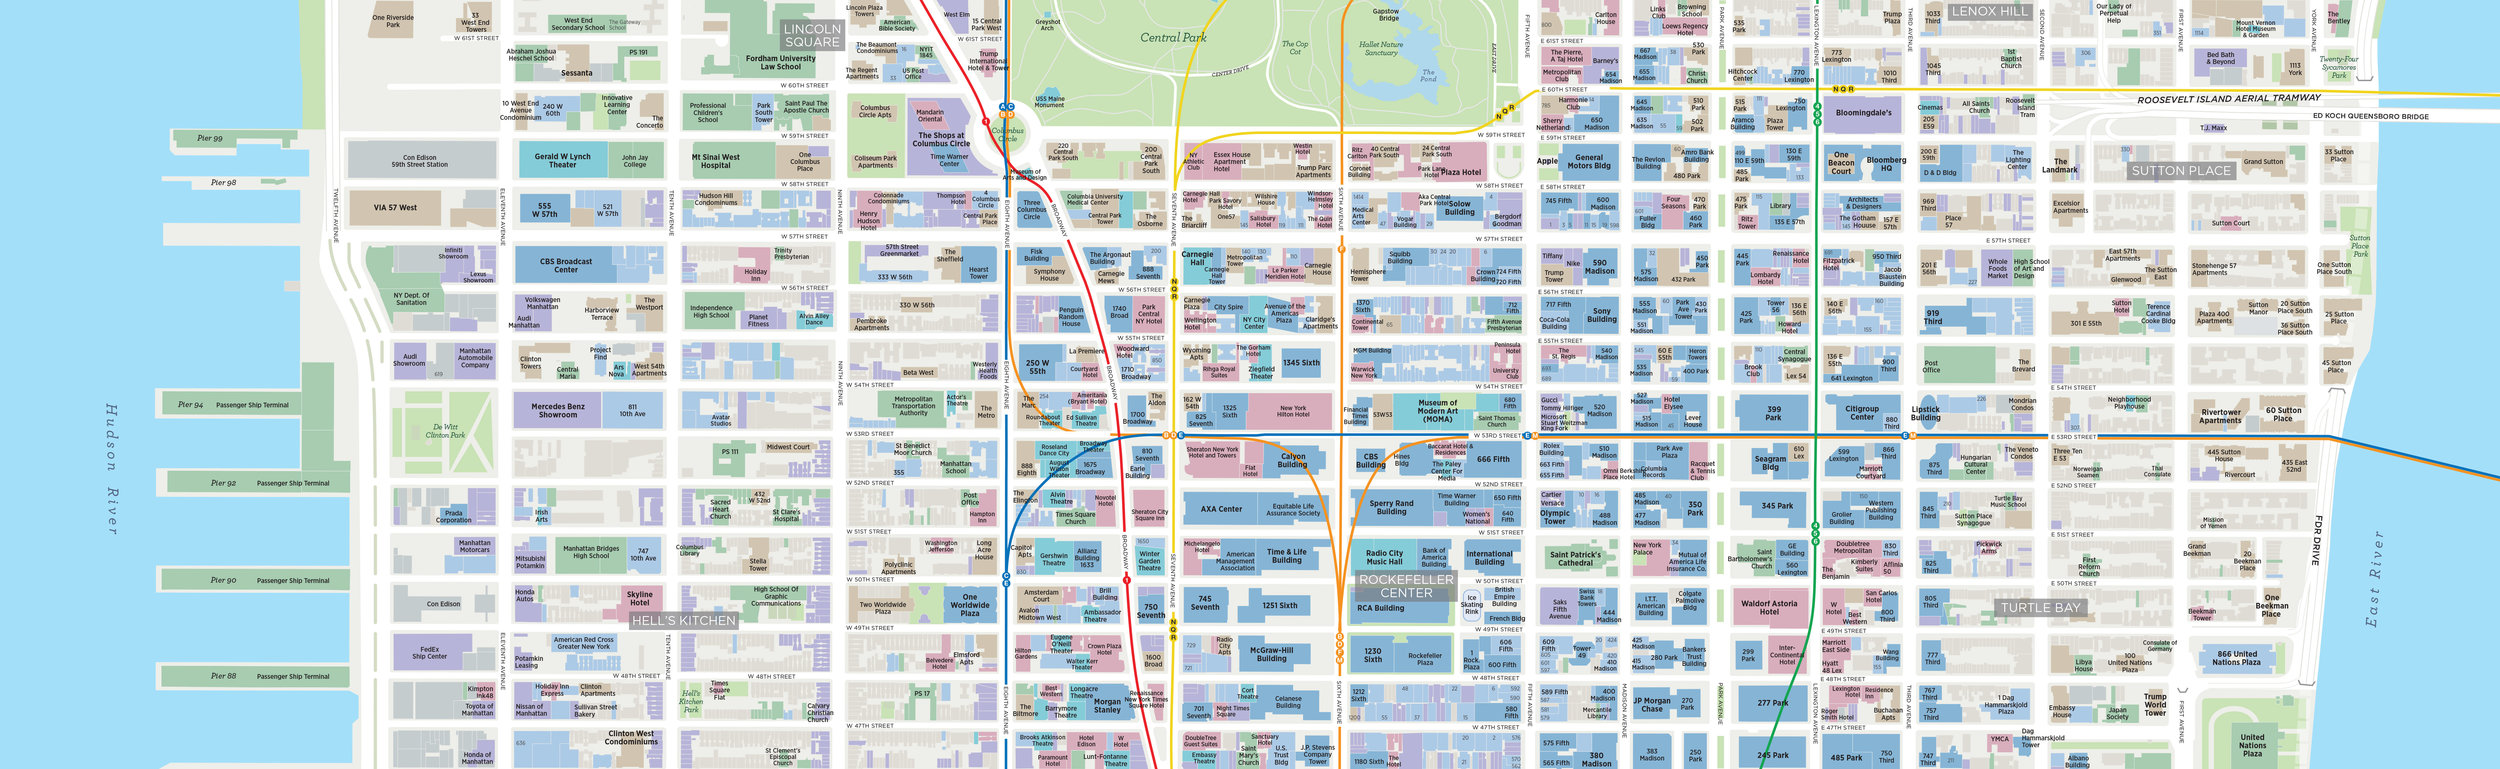 manhattan new york building detail map.jpg